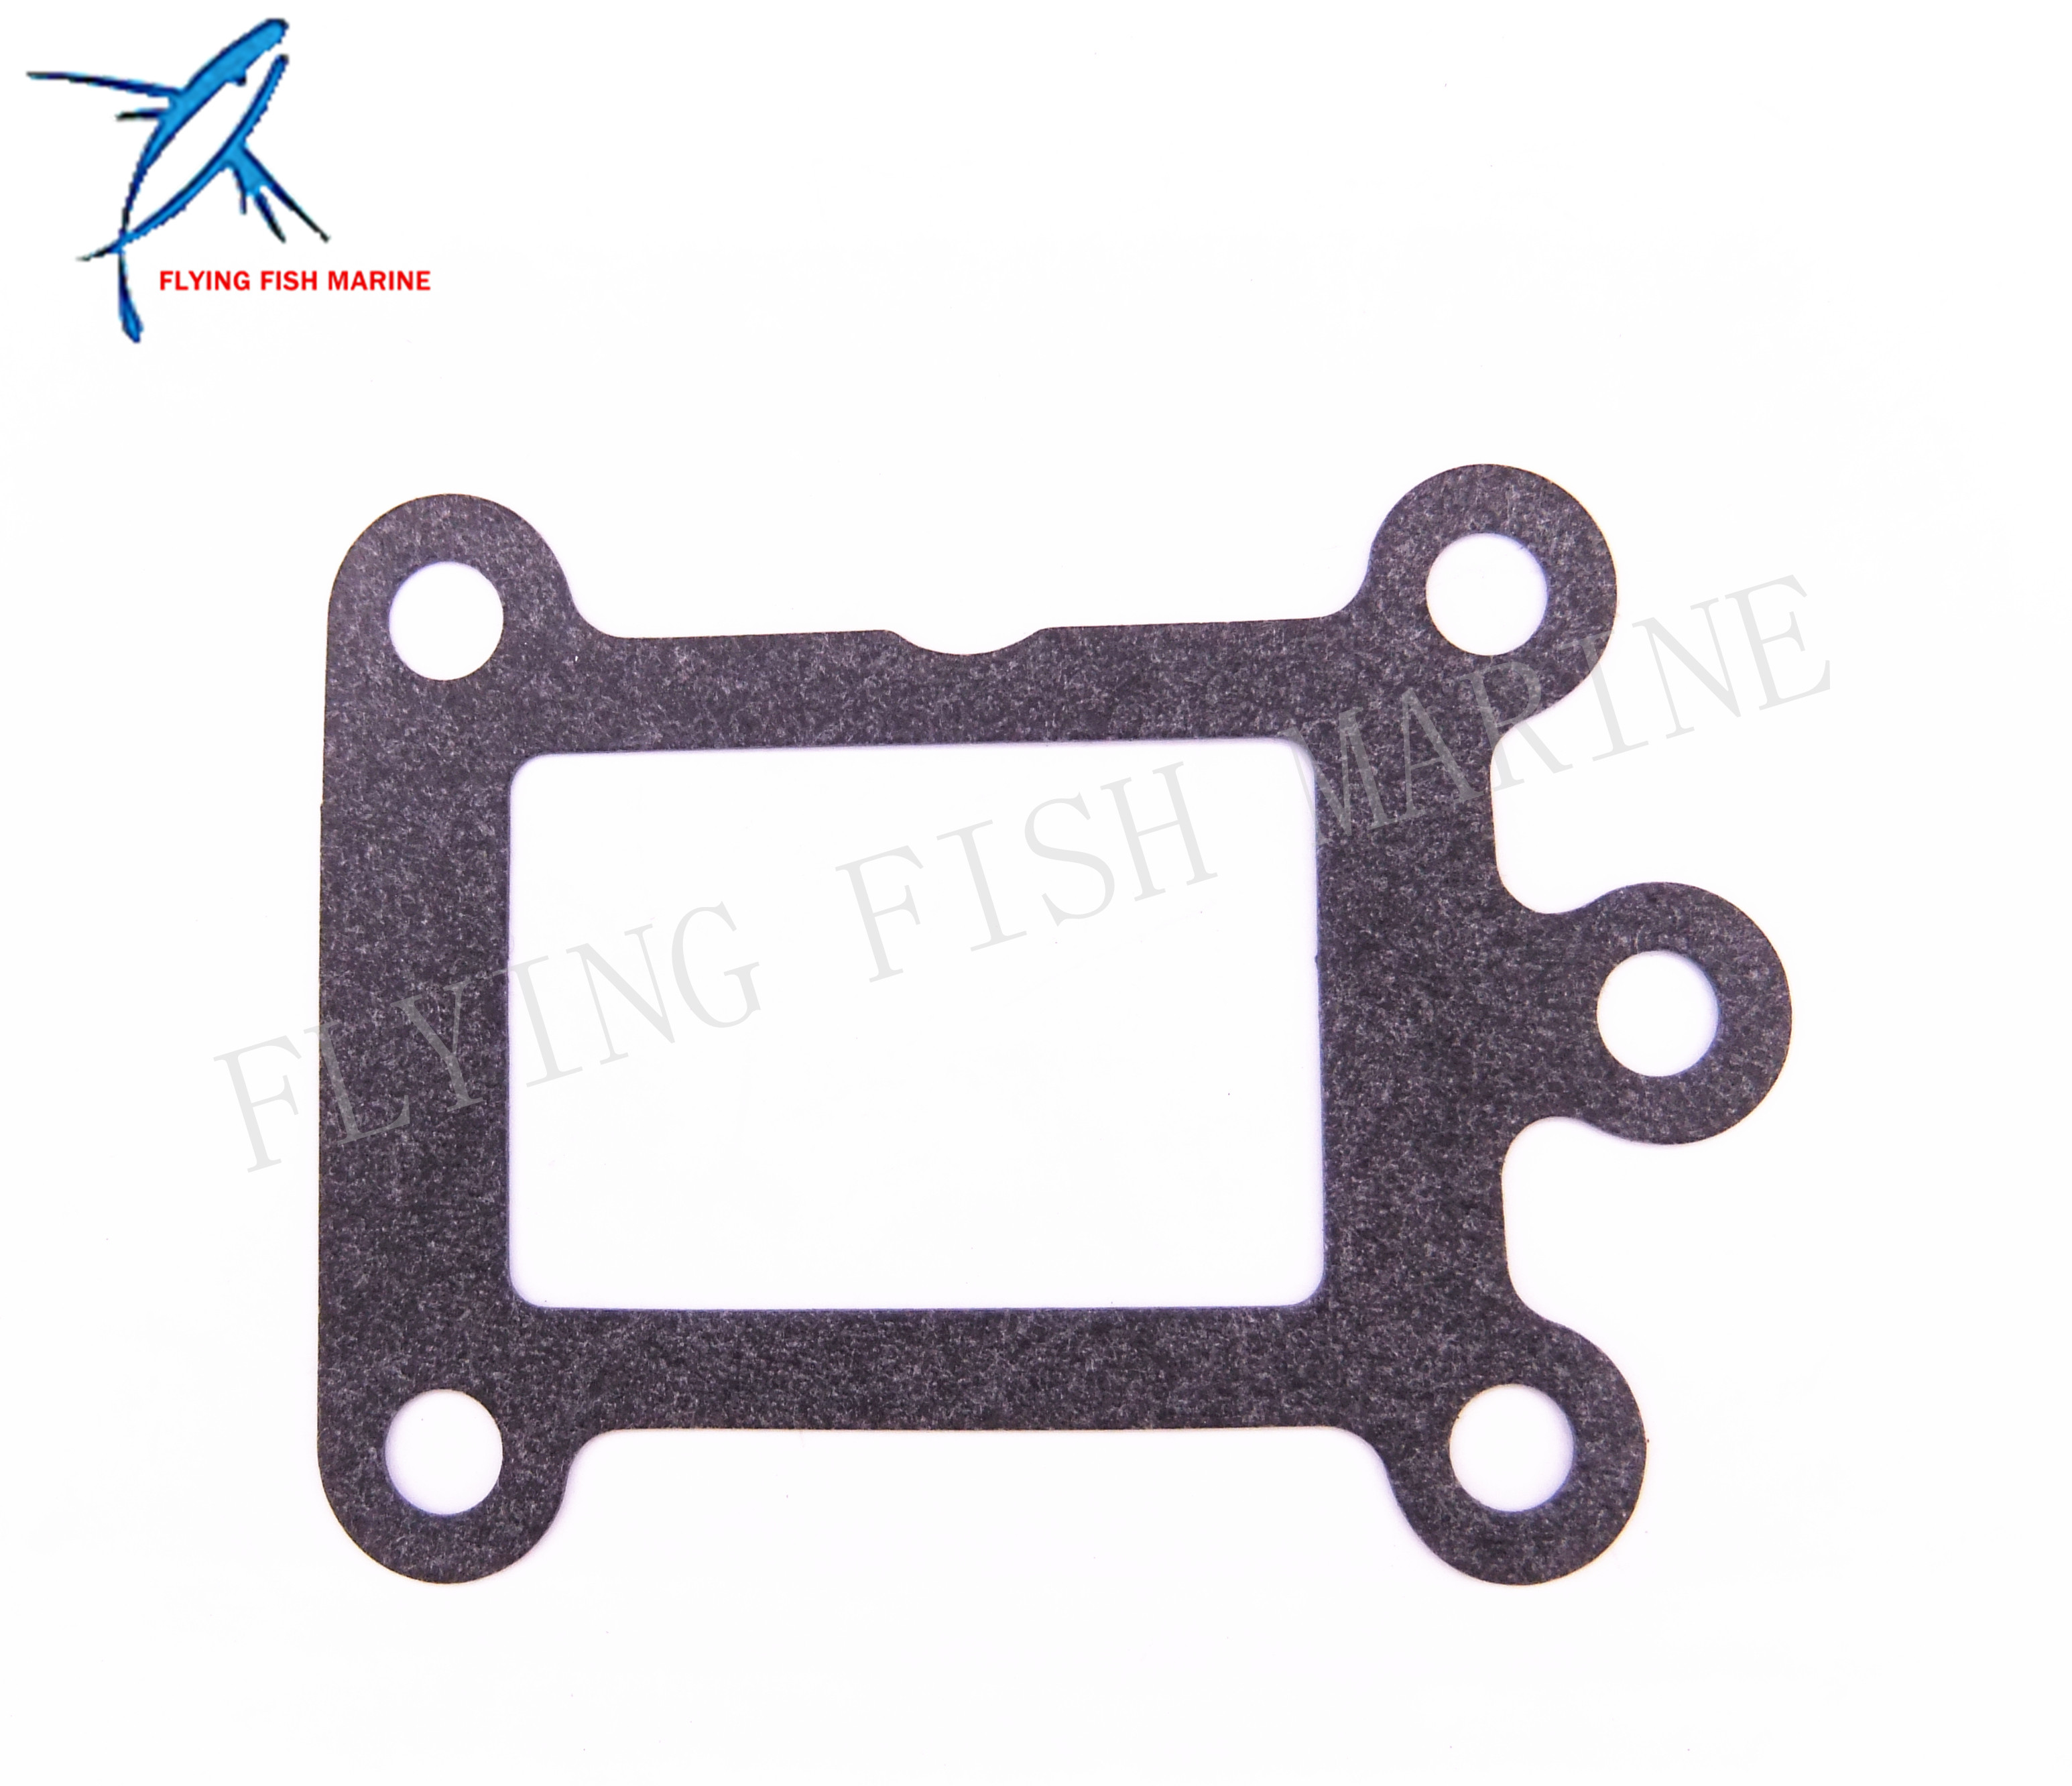 Boat Motor 6A1-13621-A0-00 Valve Seat Gasket for Yamaha 2-Stroke 2HP Outboard Engine